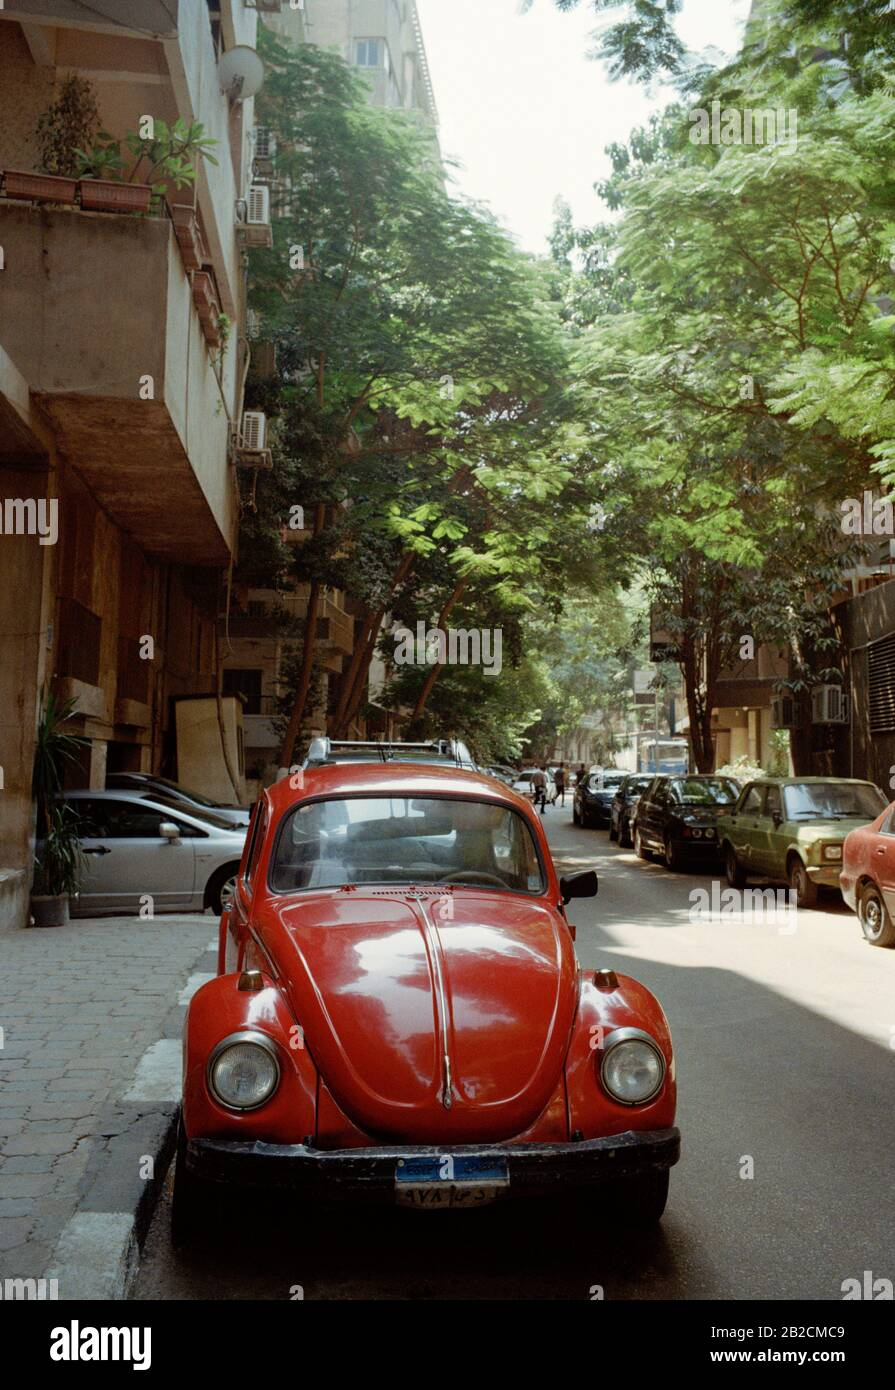 Travel Photography Old Fashioned Volkswagen Beetle In Garden City District Cairo In Egypt In North Africa Middle East Stock Photo Alamy